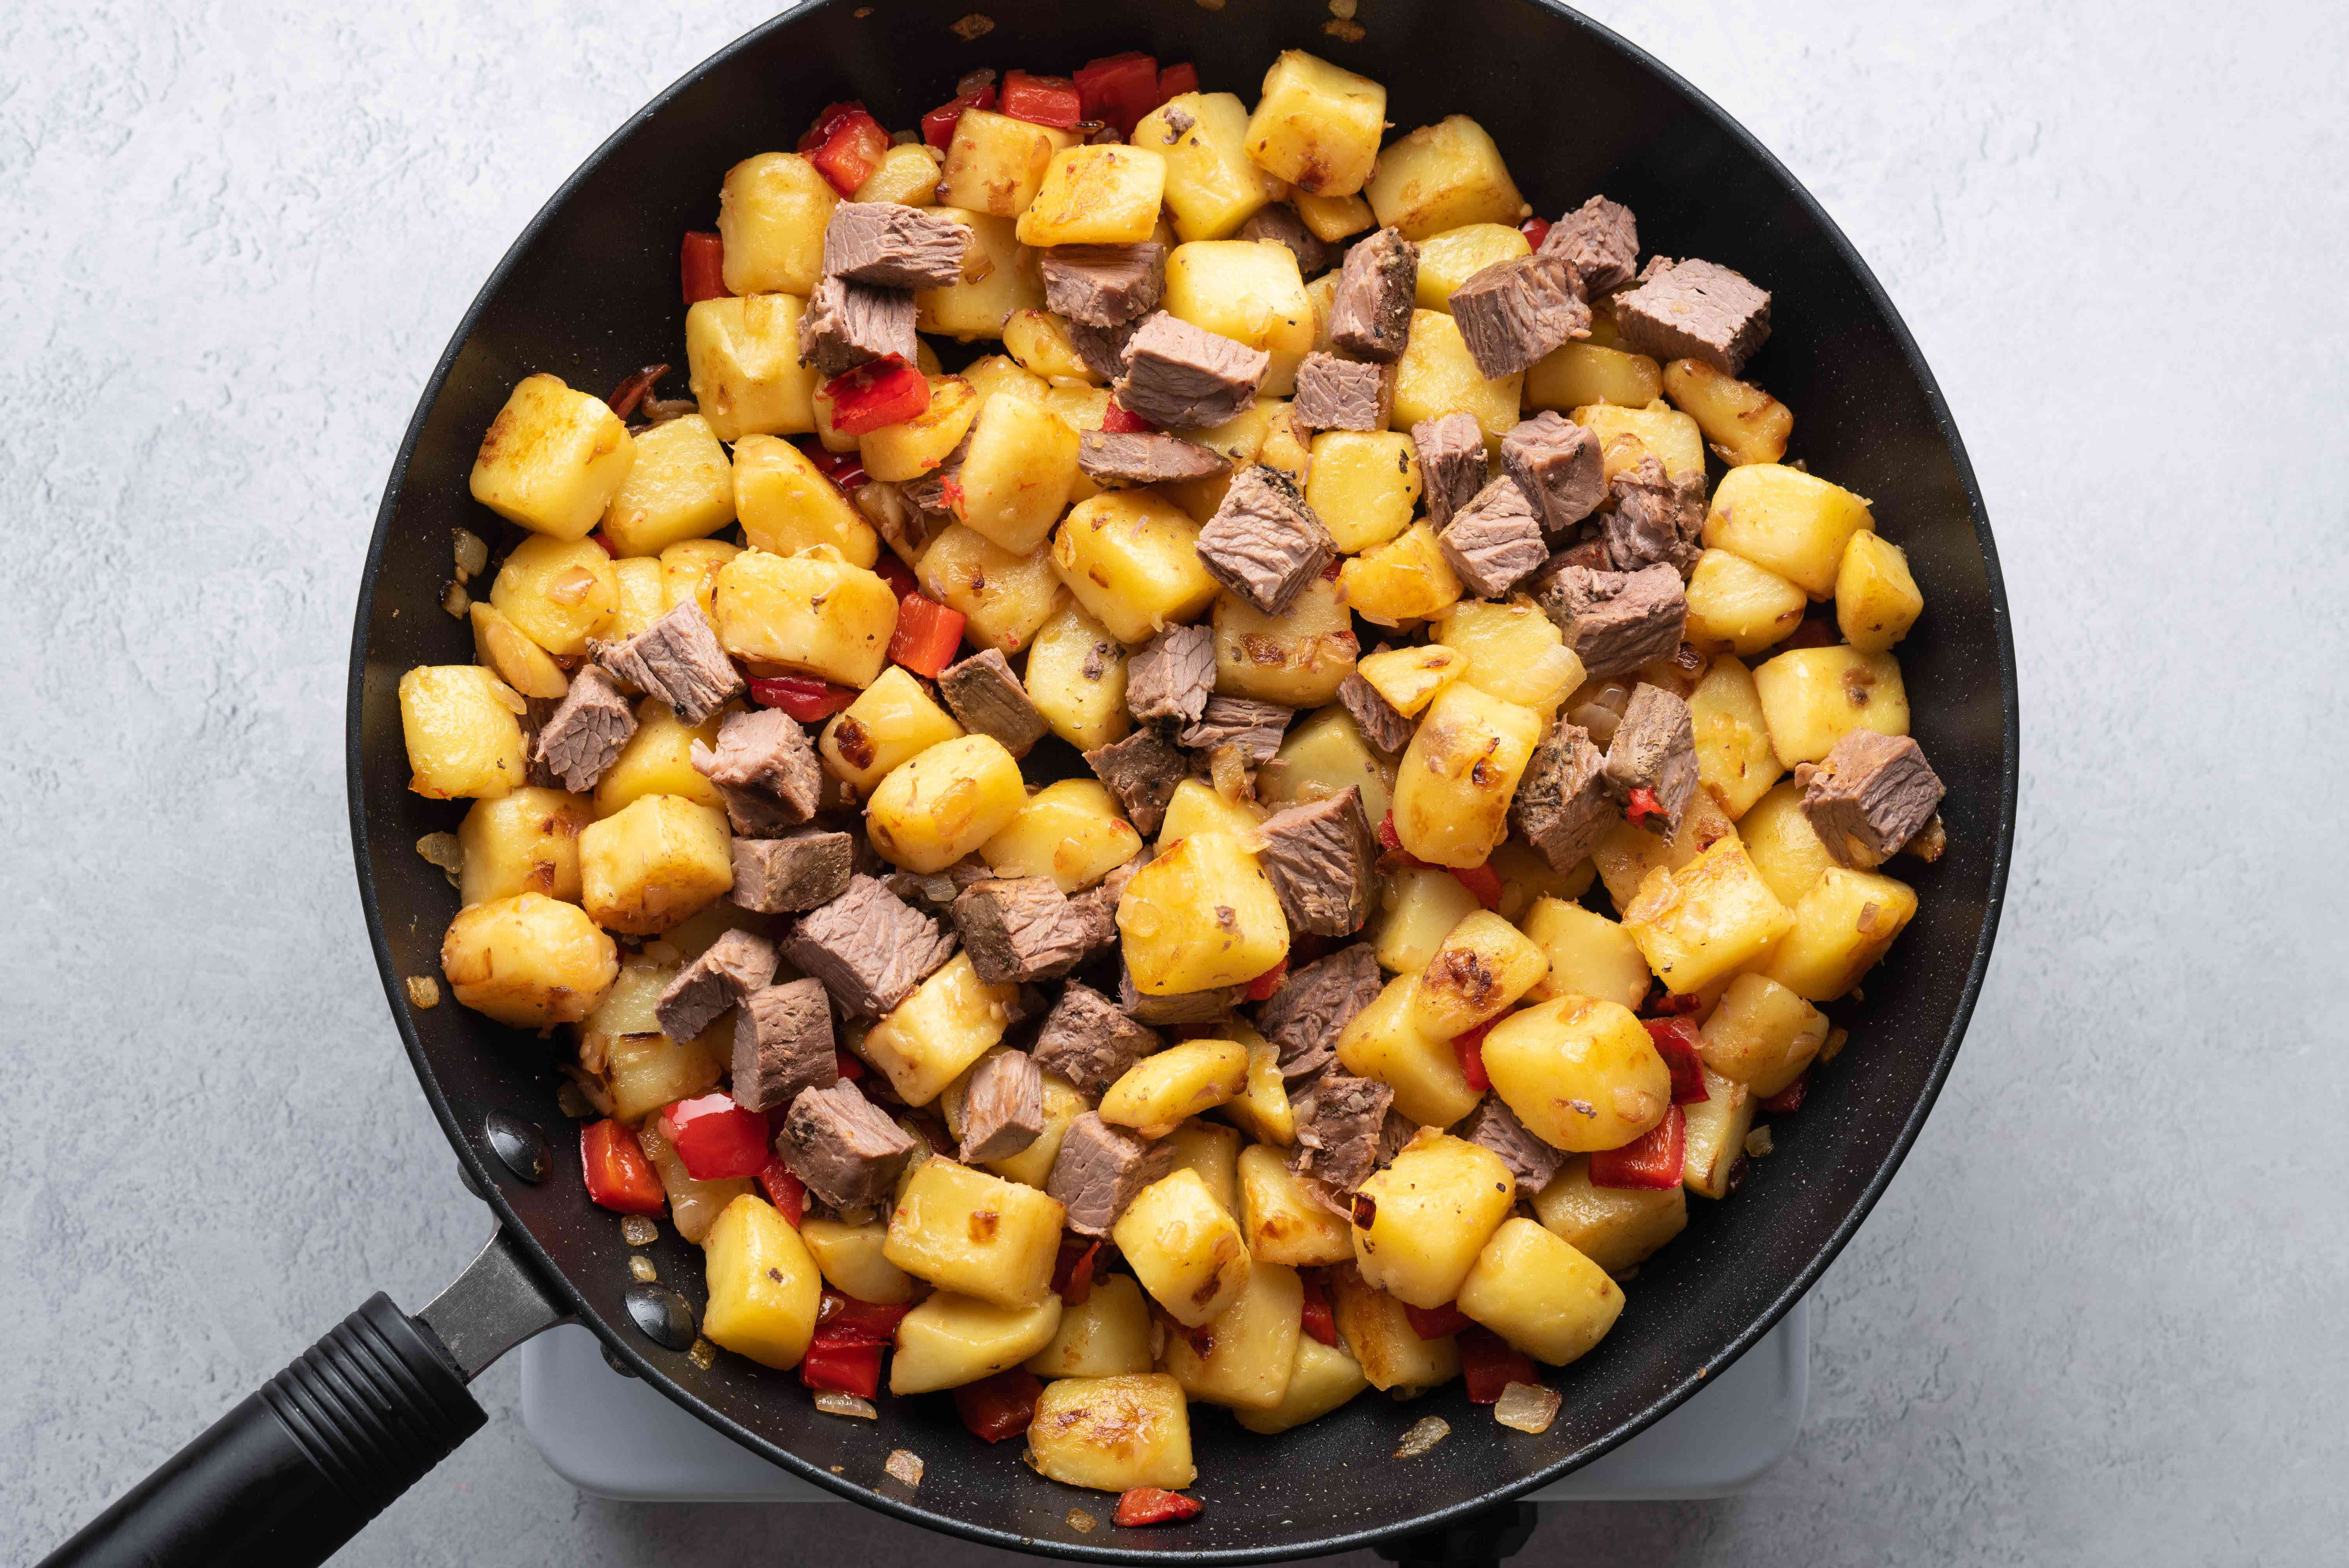 brisket added to the potato mixture in the pan